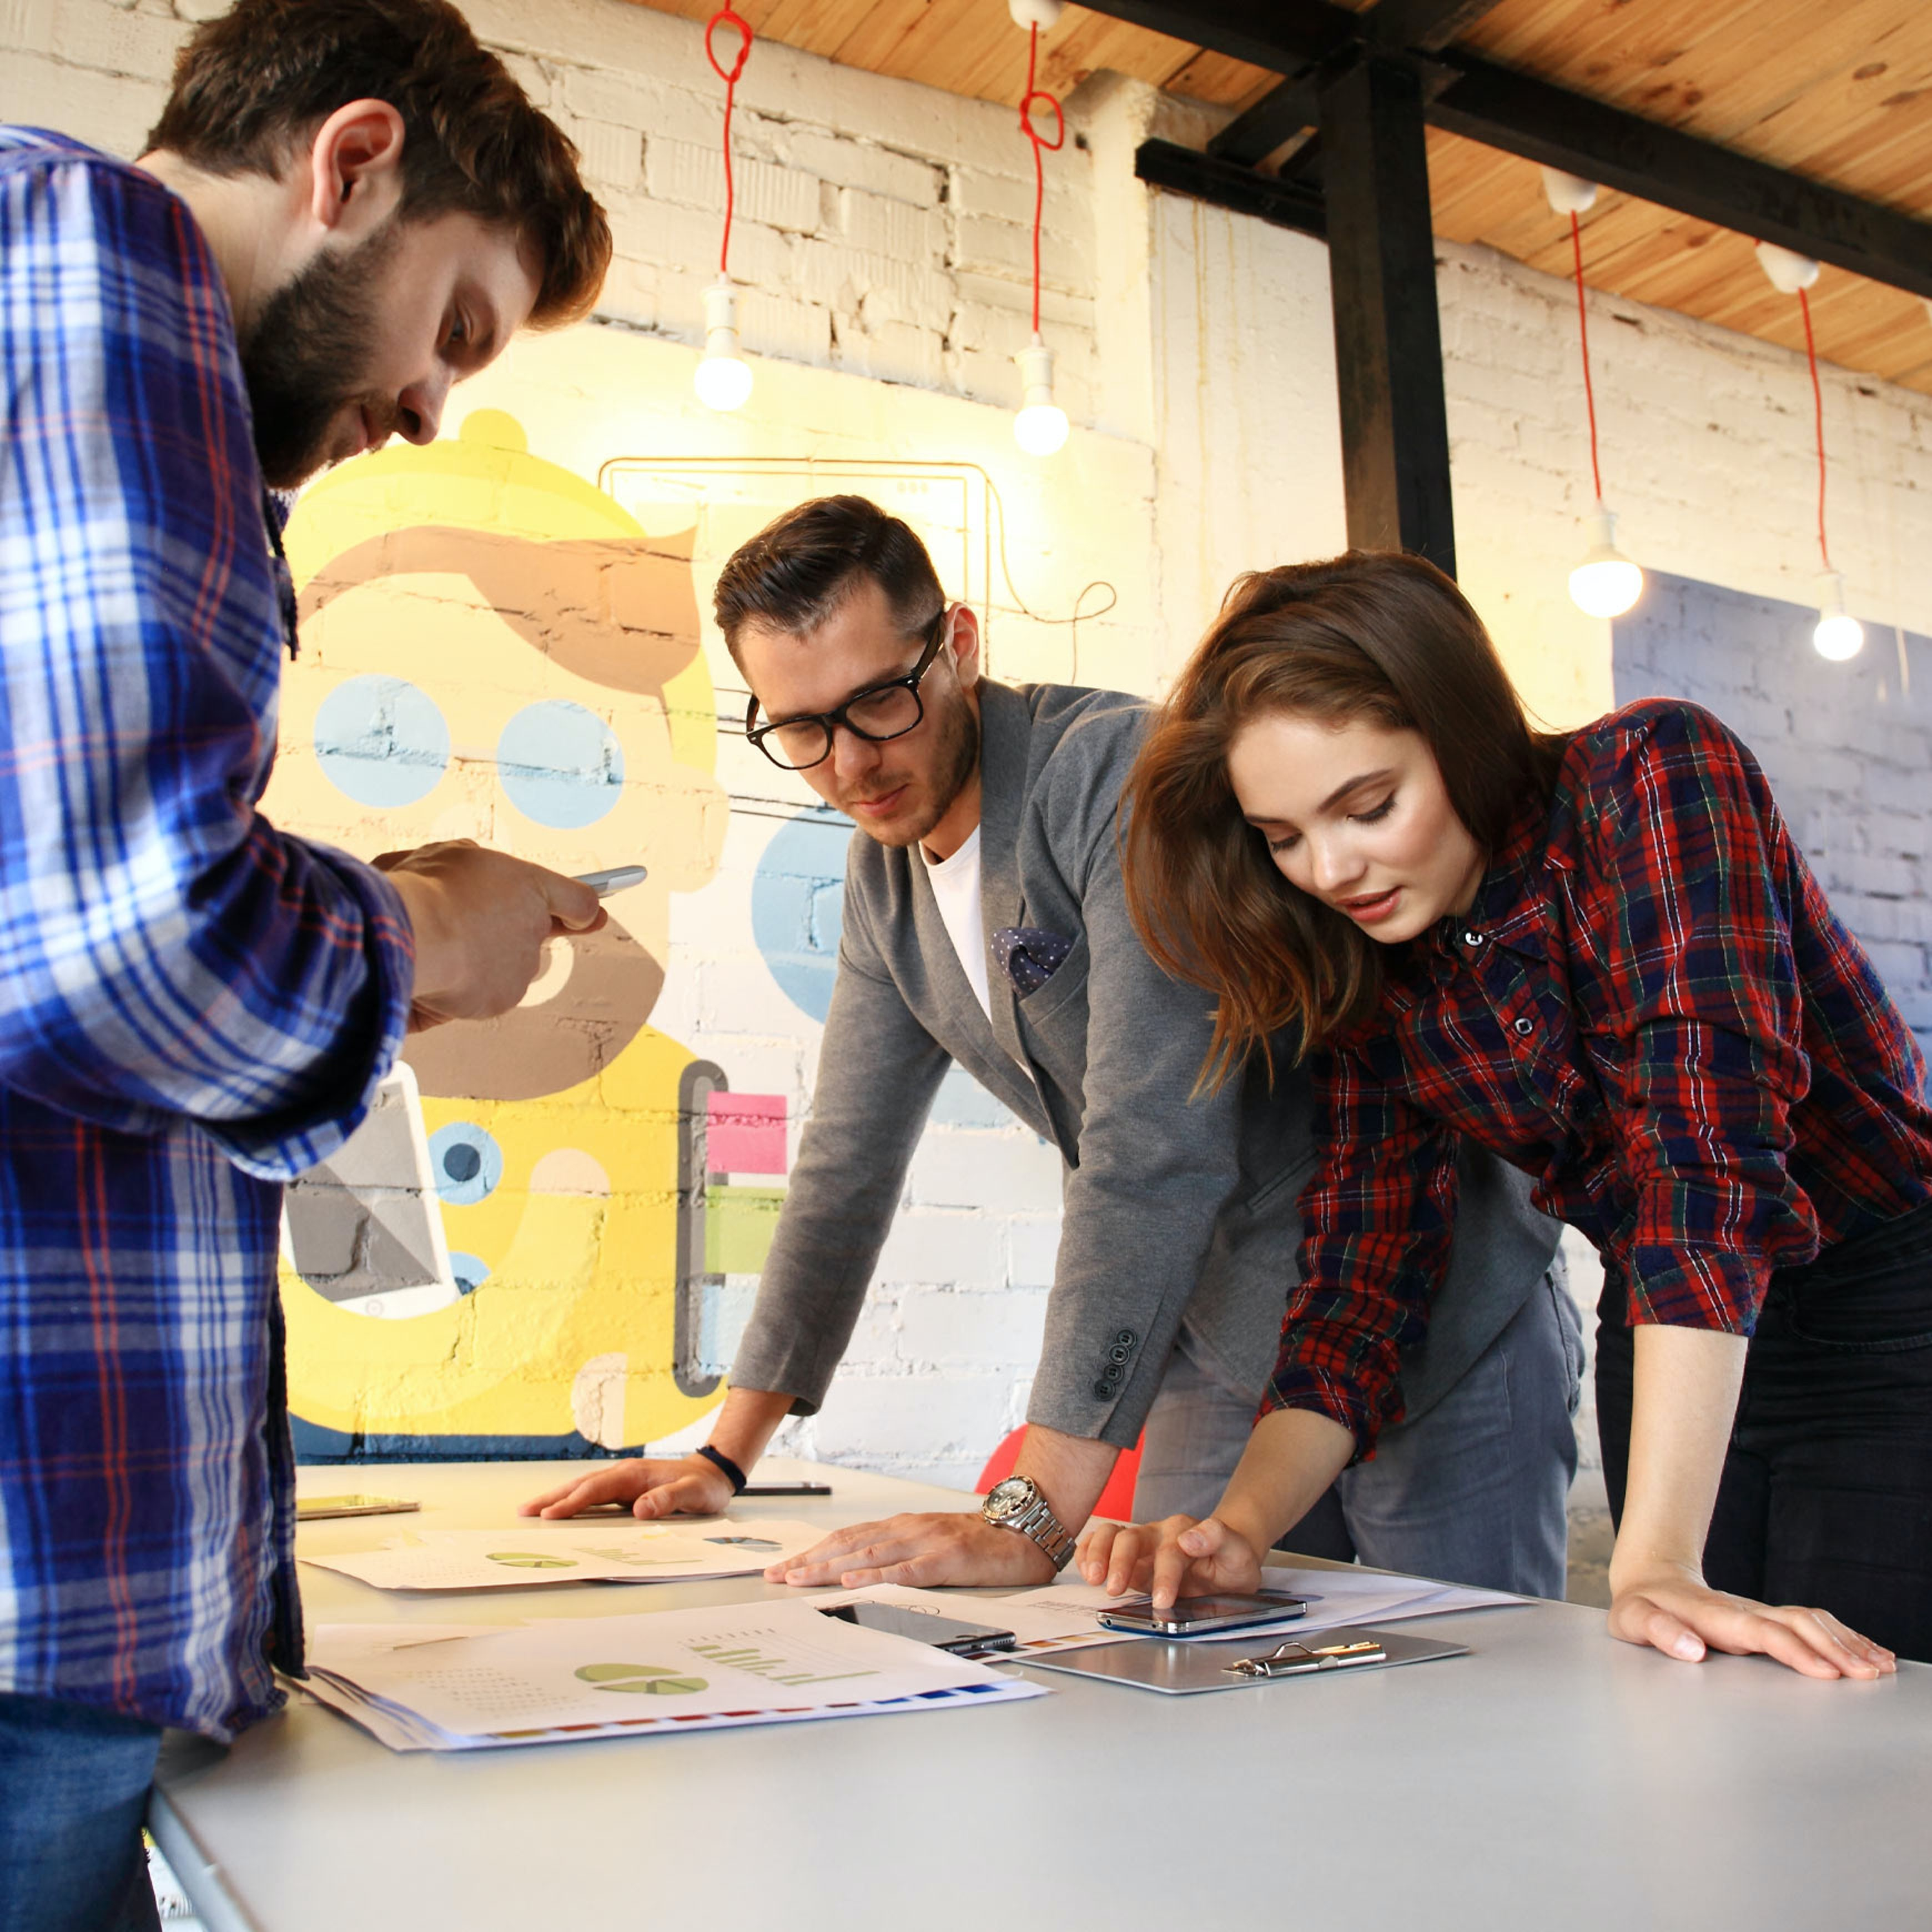 group of employees looking at documents on desk in creative office